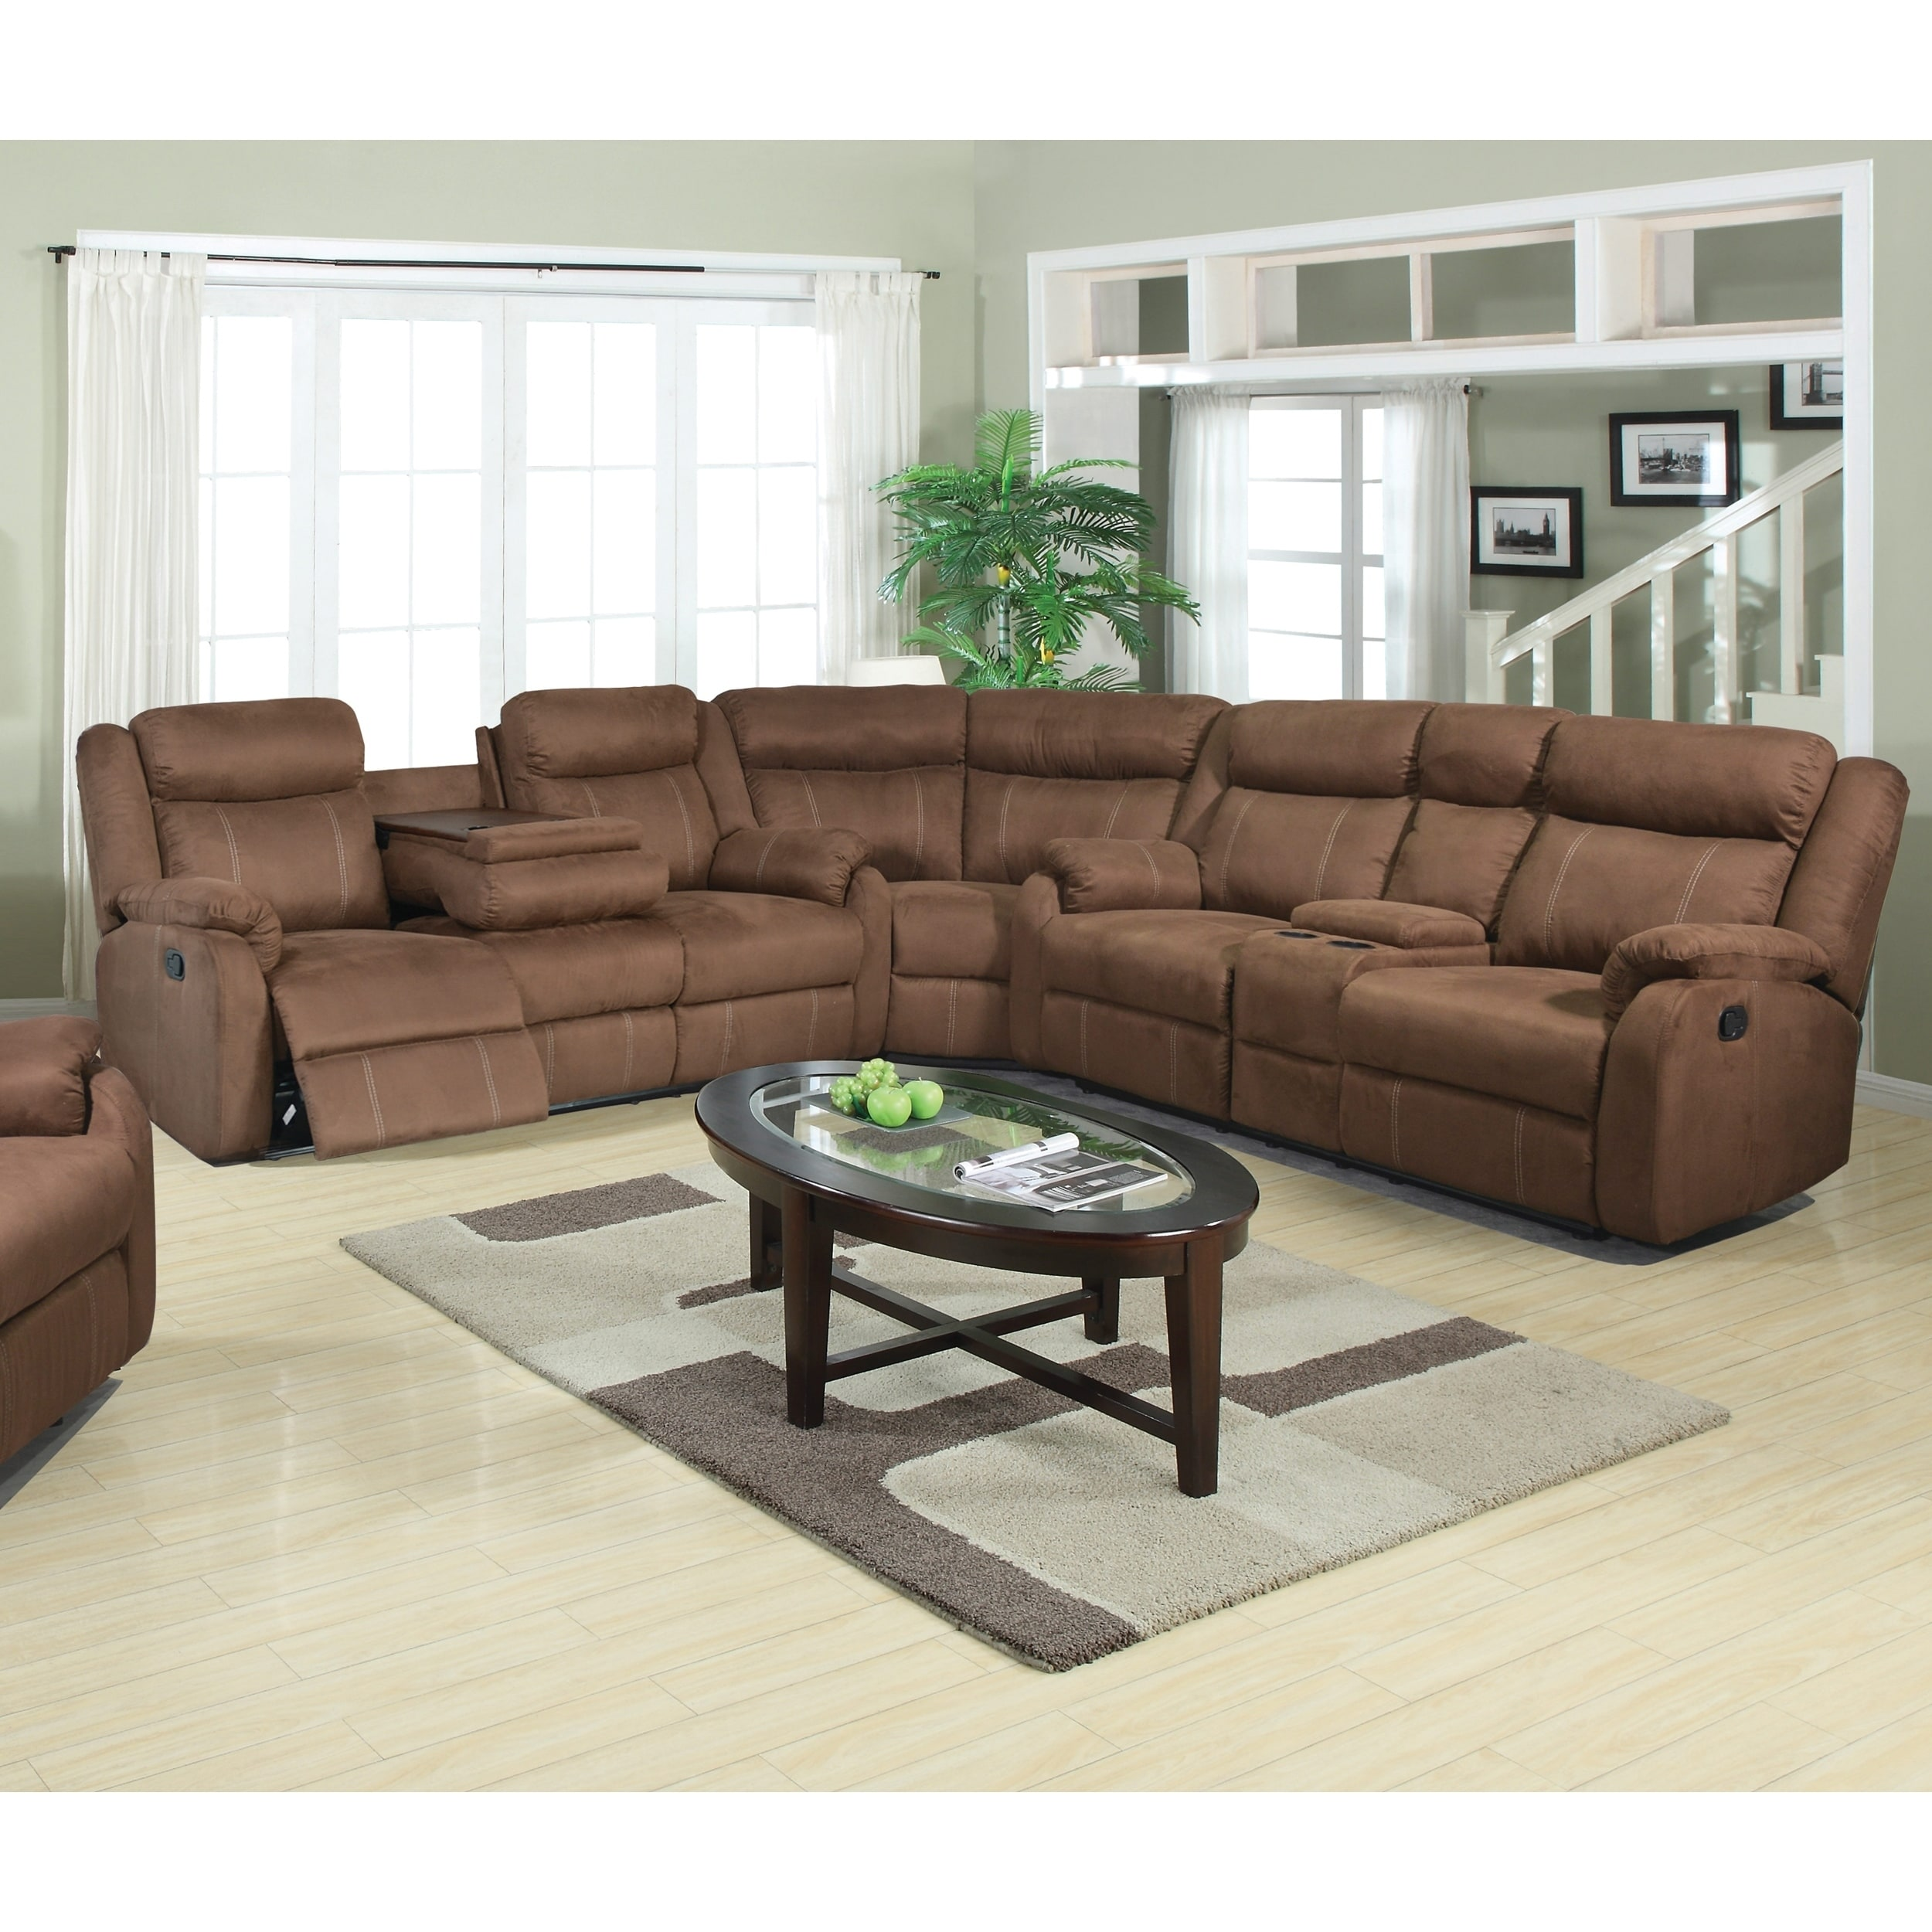 Shop Tompkins Chocolate Fabric Sectional Sofa - Free Shipping Today ...